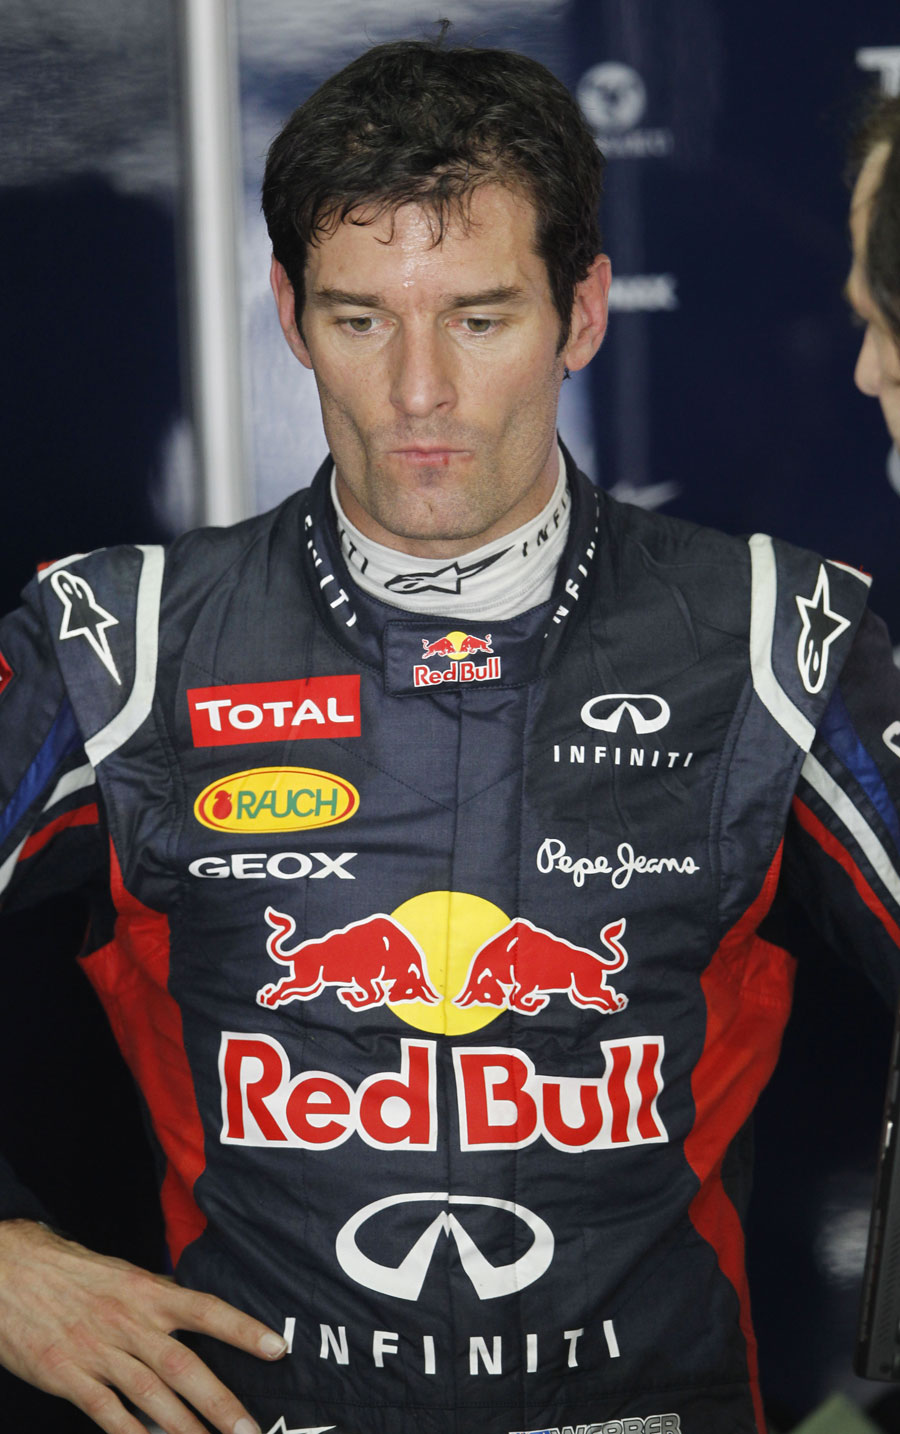 Mark Webber deep in thought in the Red Bull garage